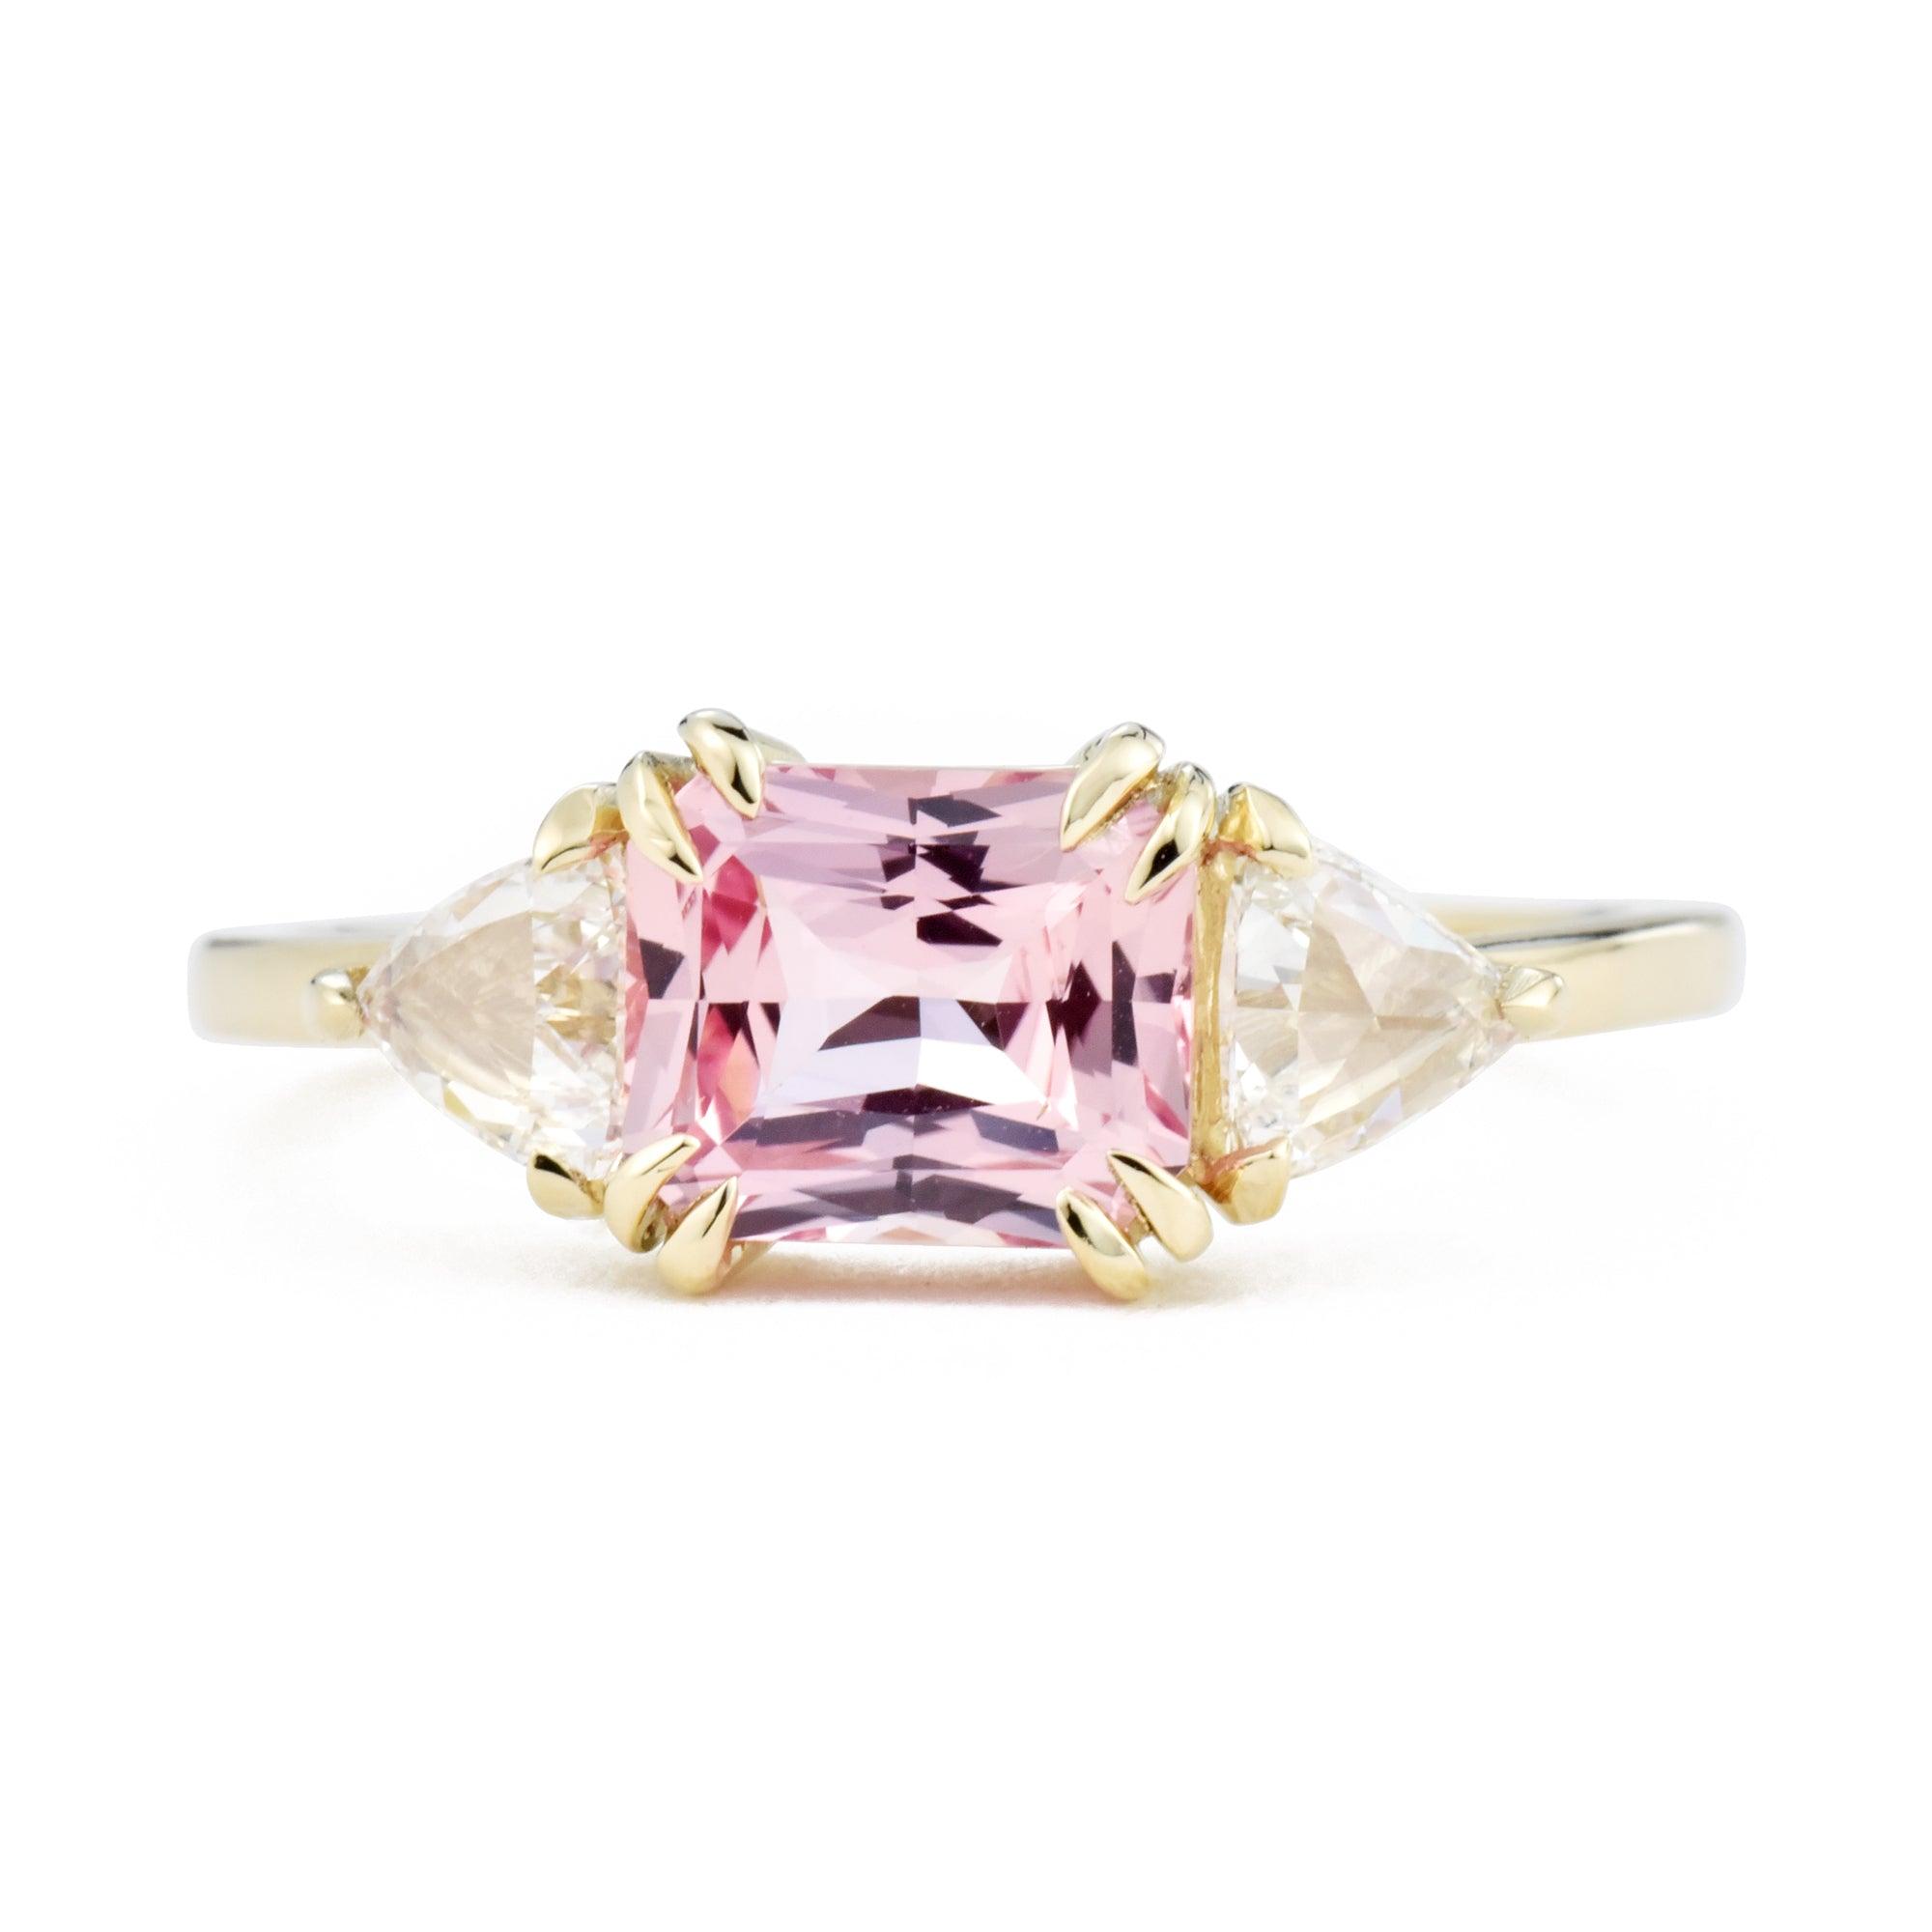 Zara Three-Stone Pink Sapphire & Diamond Engagement Ring